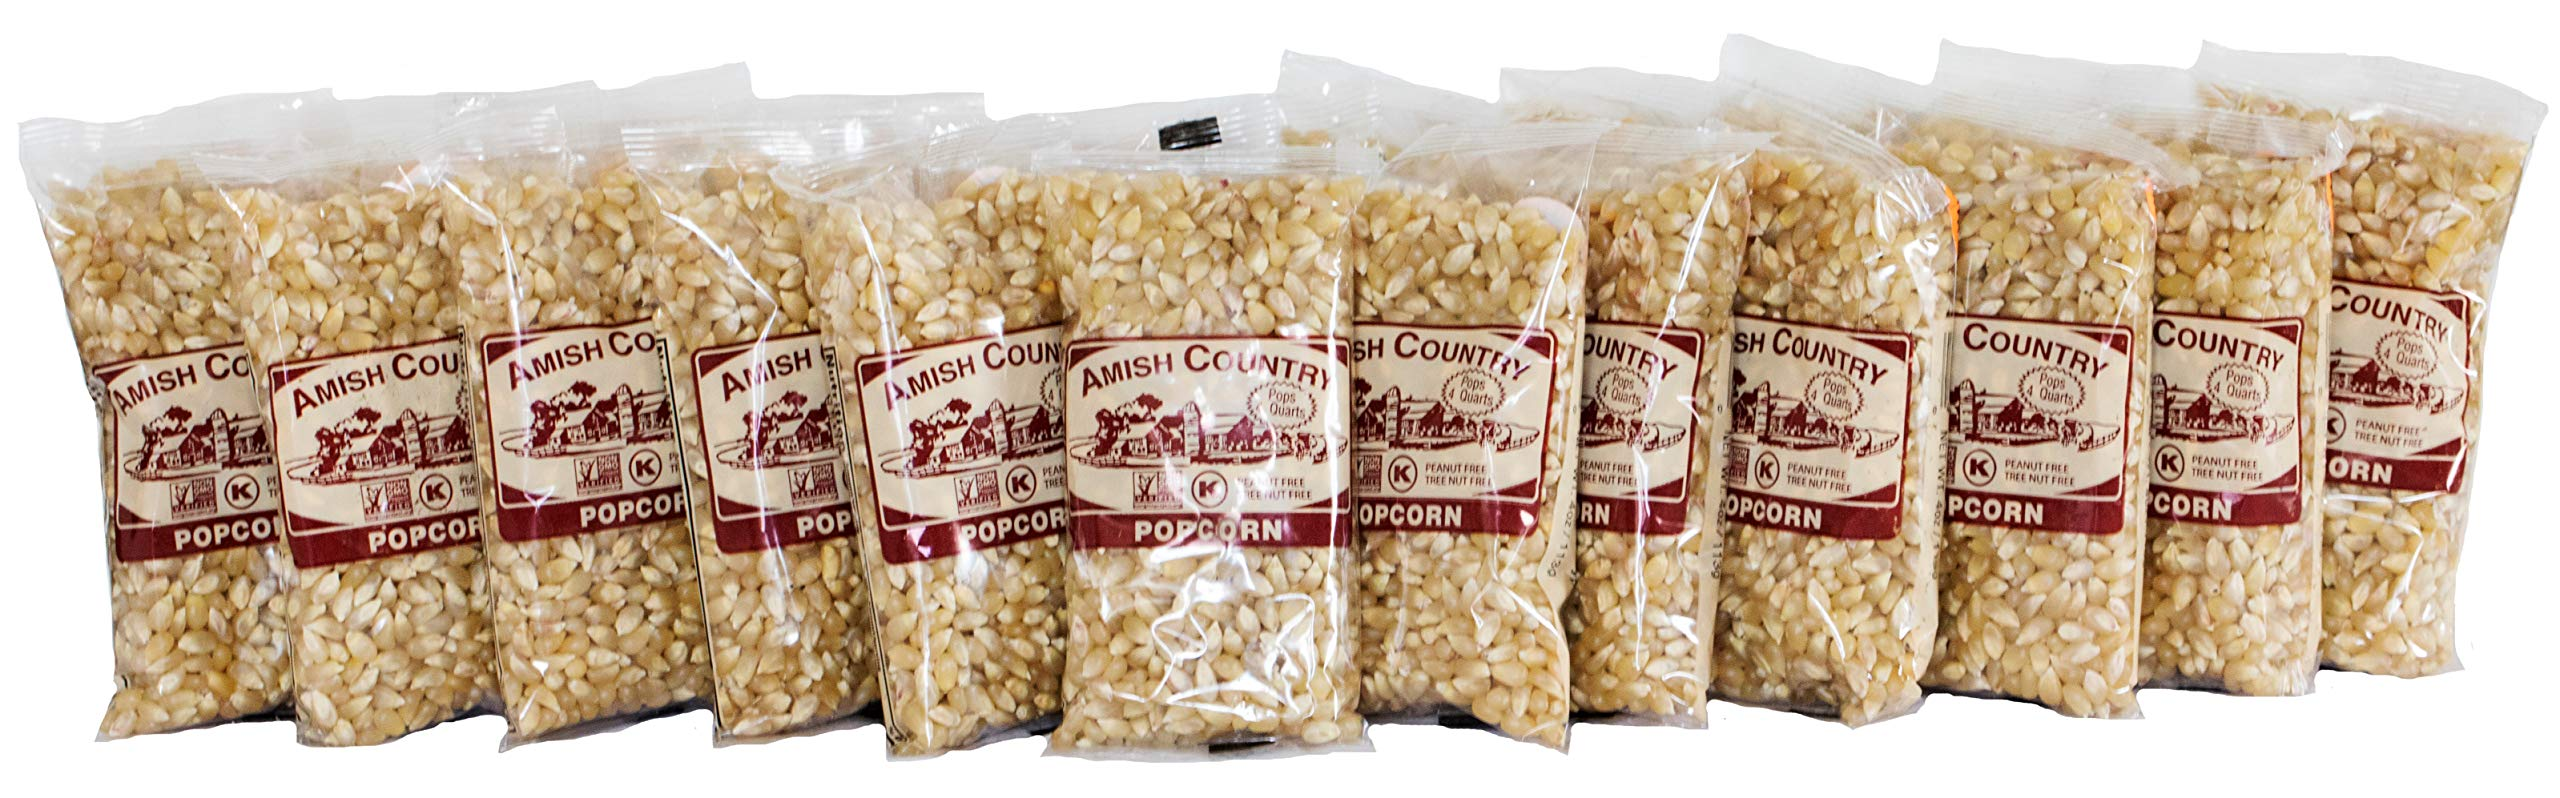 Amish Country Popcorn - Old Fashioned Baby White Kernels - (4 Ounce - 24 Bags) - Small & Tender Popcorn - With Recipe Guide by Amish Country Popcorn